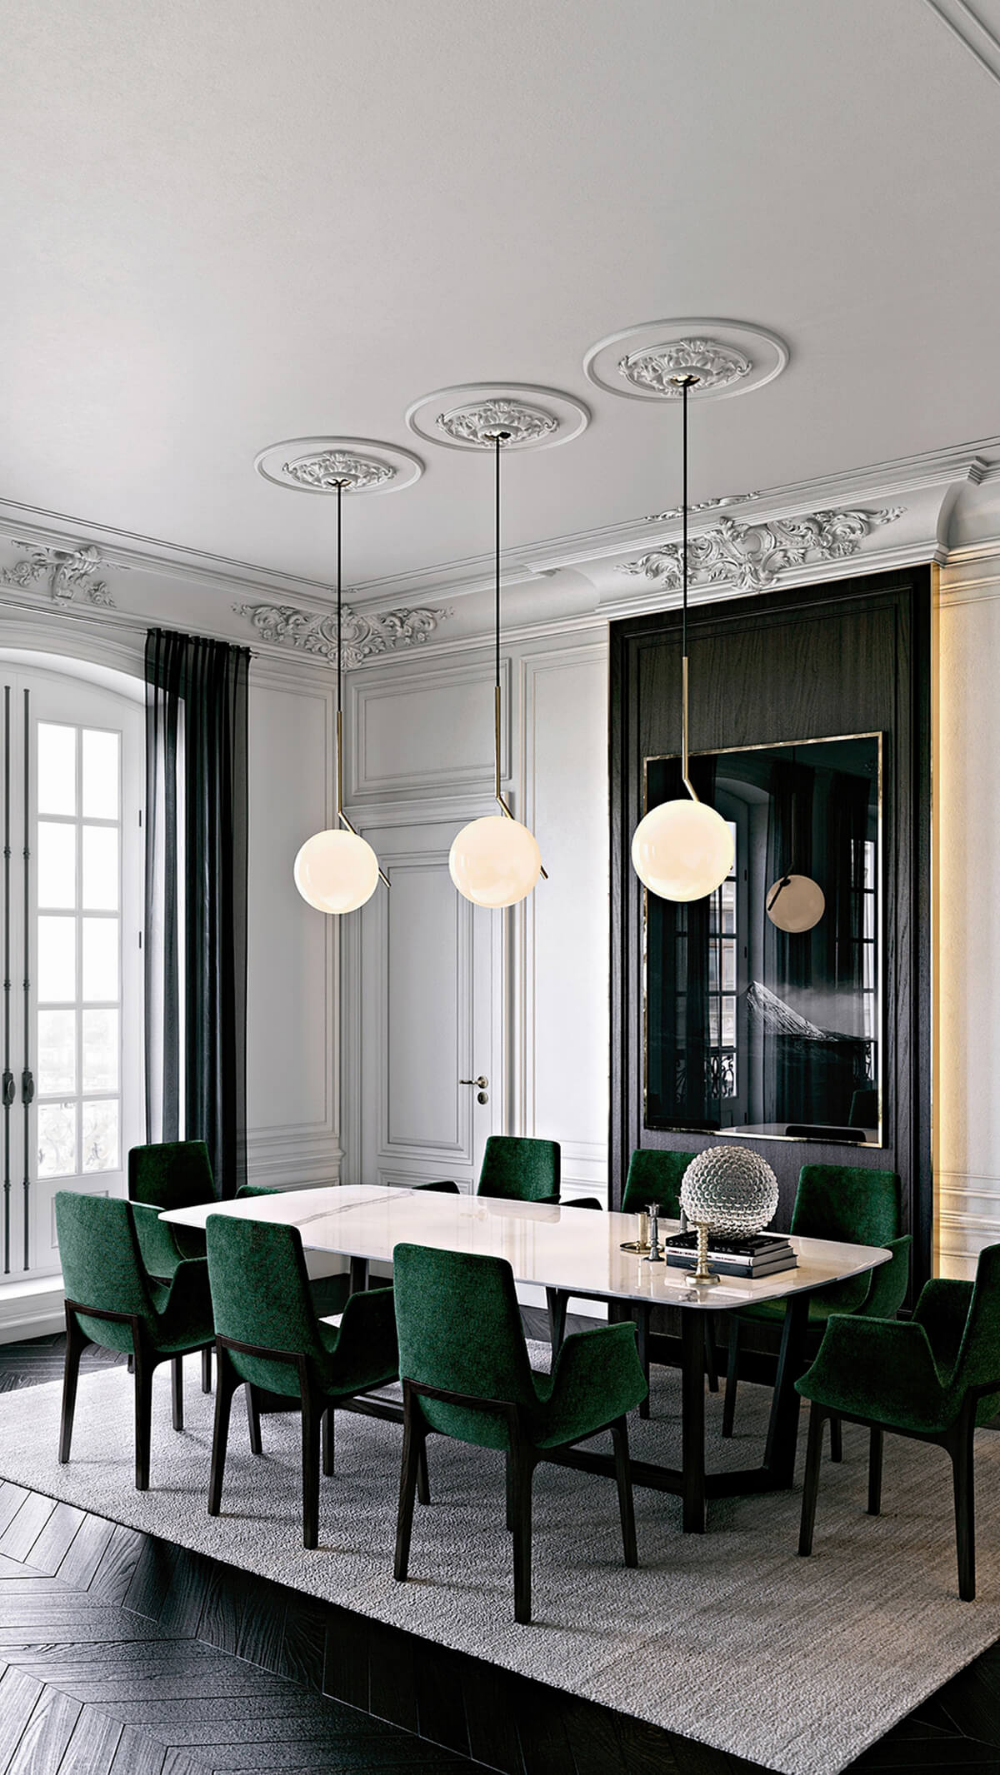 Chaises En Velours Vert Sapin Luxury Dining Luxury Dining Room Dining Room Design